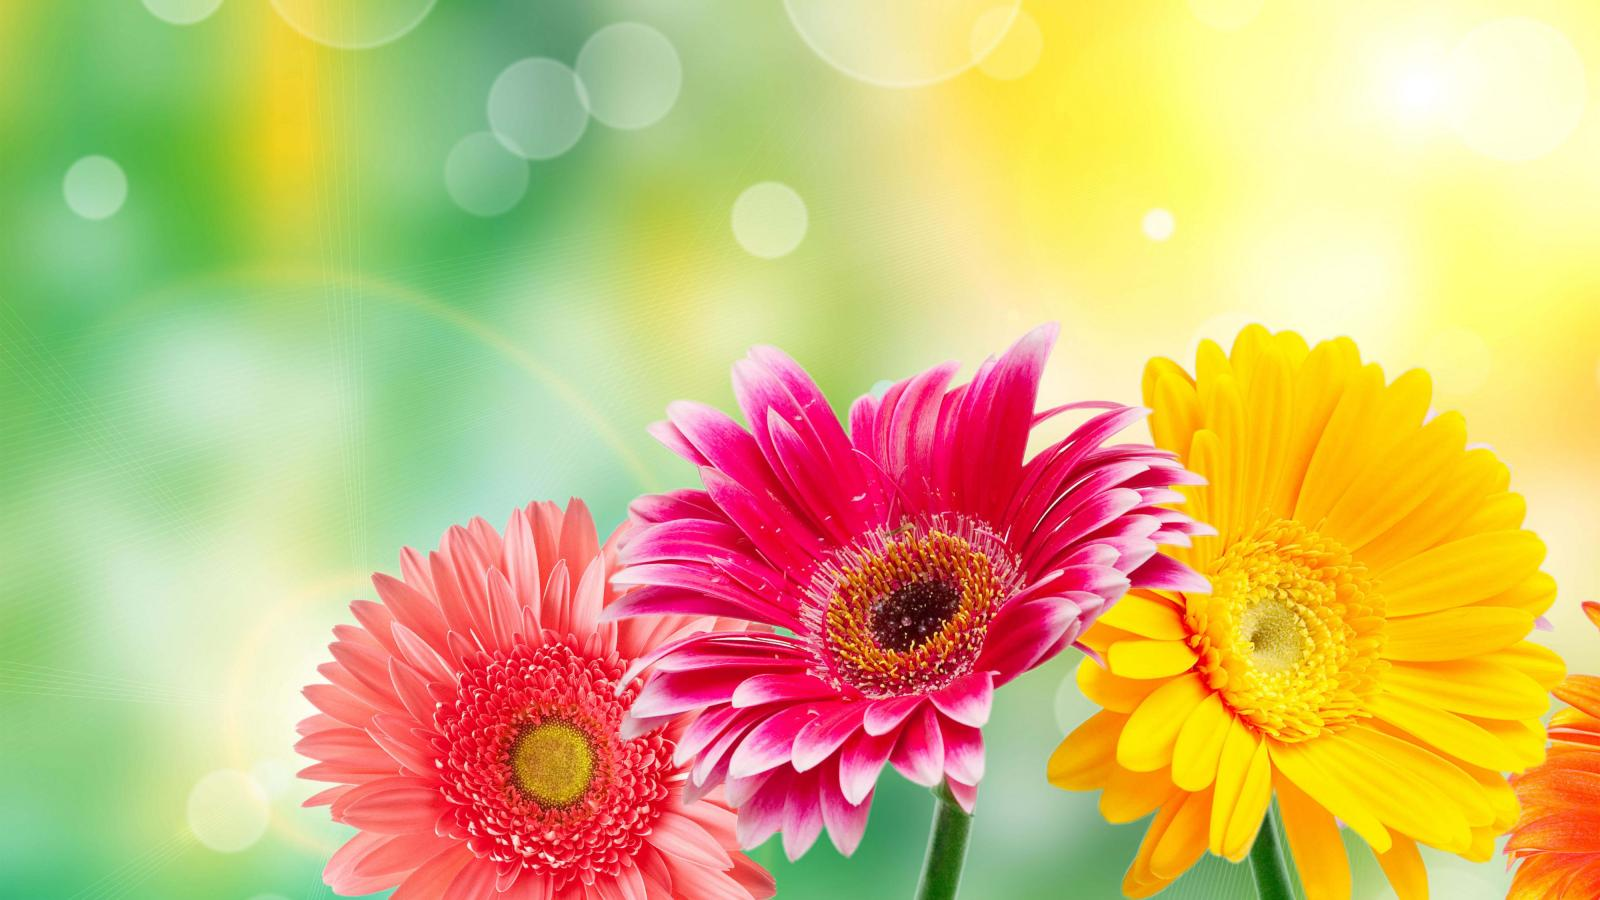 High Resolution Flower Wallpaper: High Resolution Flower Images For Wallpaper